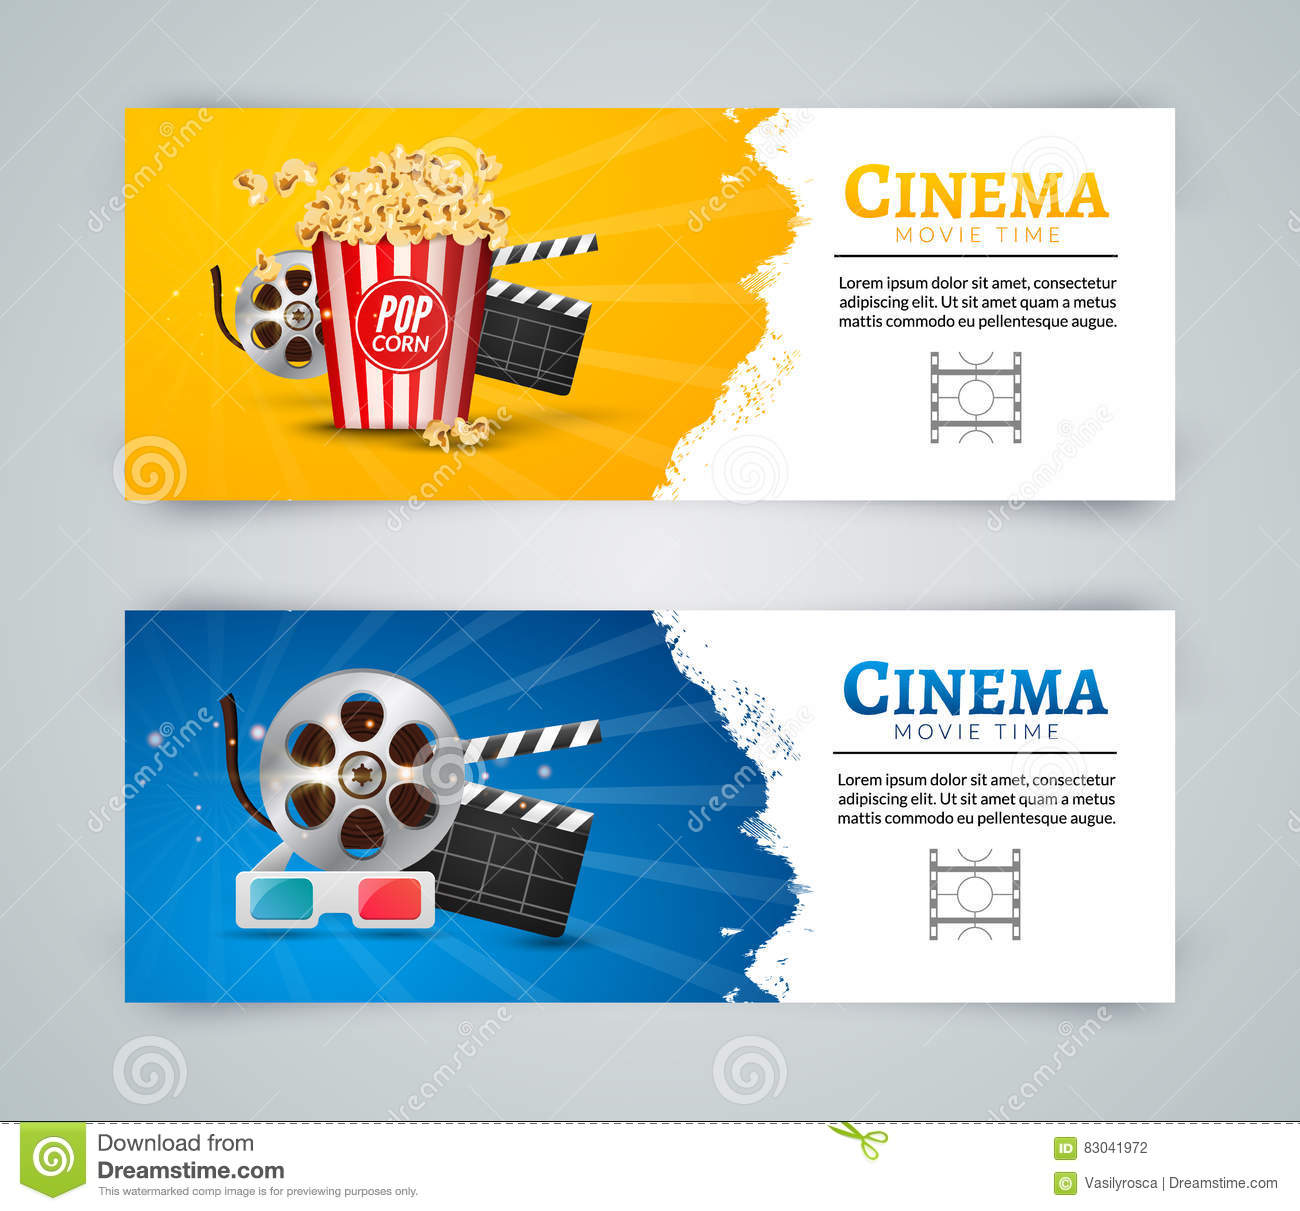 Magnificent 1099 Template Excel Tiny 1099 Template Word Solid 2014 Monthly Calendar Templates 2015 Template Calendar Youthful 3d Animator Resume Templates Dark3d Character Modeler Resume Cinema Movie Banner Poster Design Template. Film Clapper, 3D ..